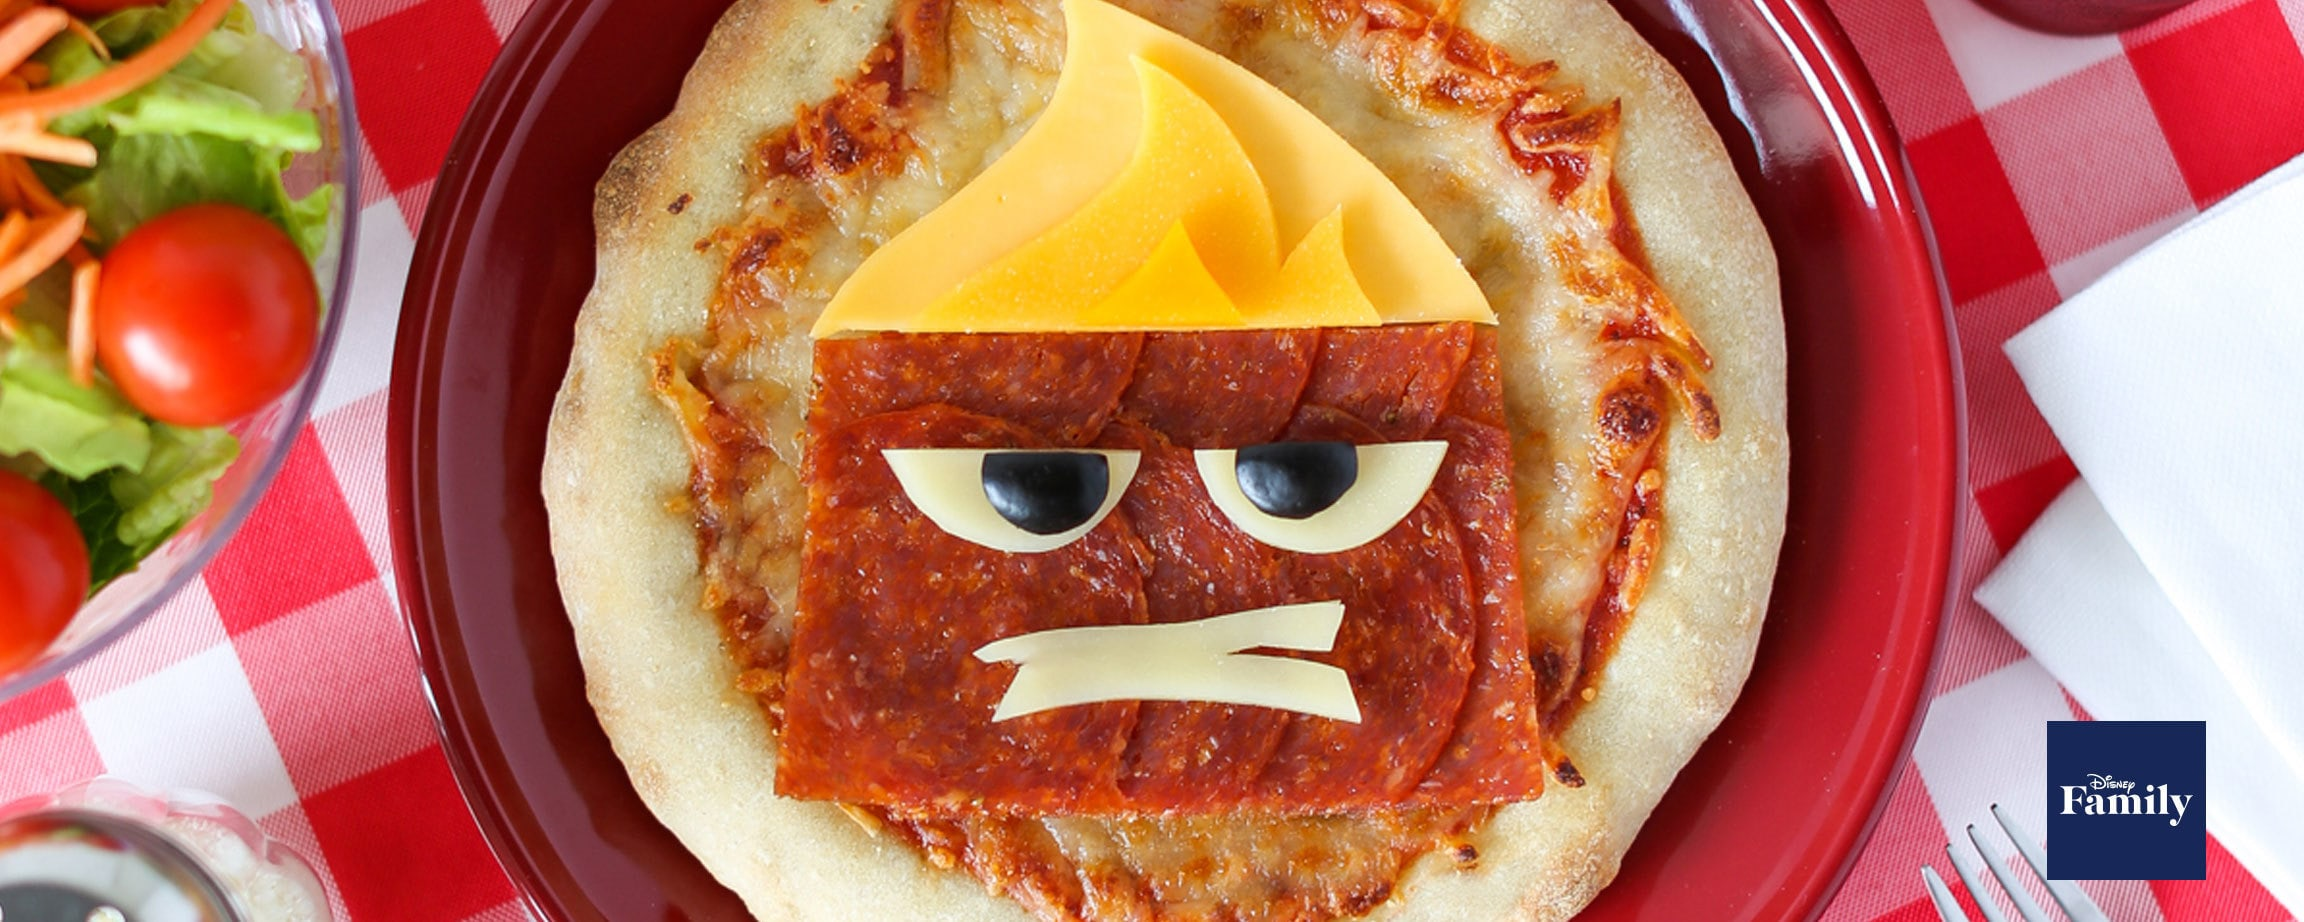 Pixar's Inside Out Anger Pizza